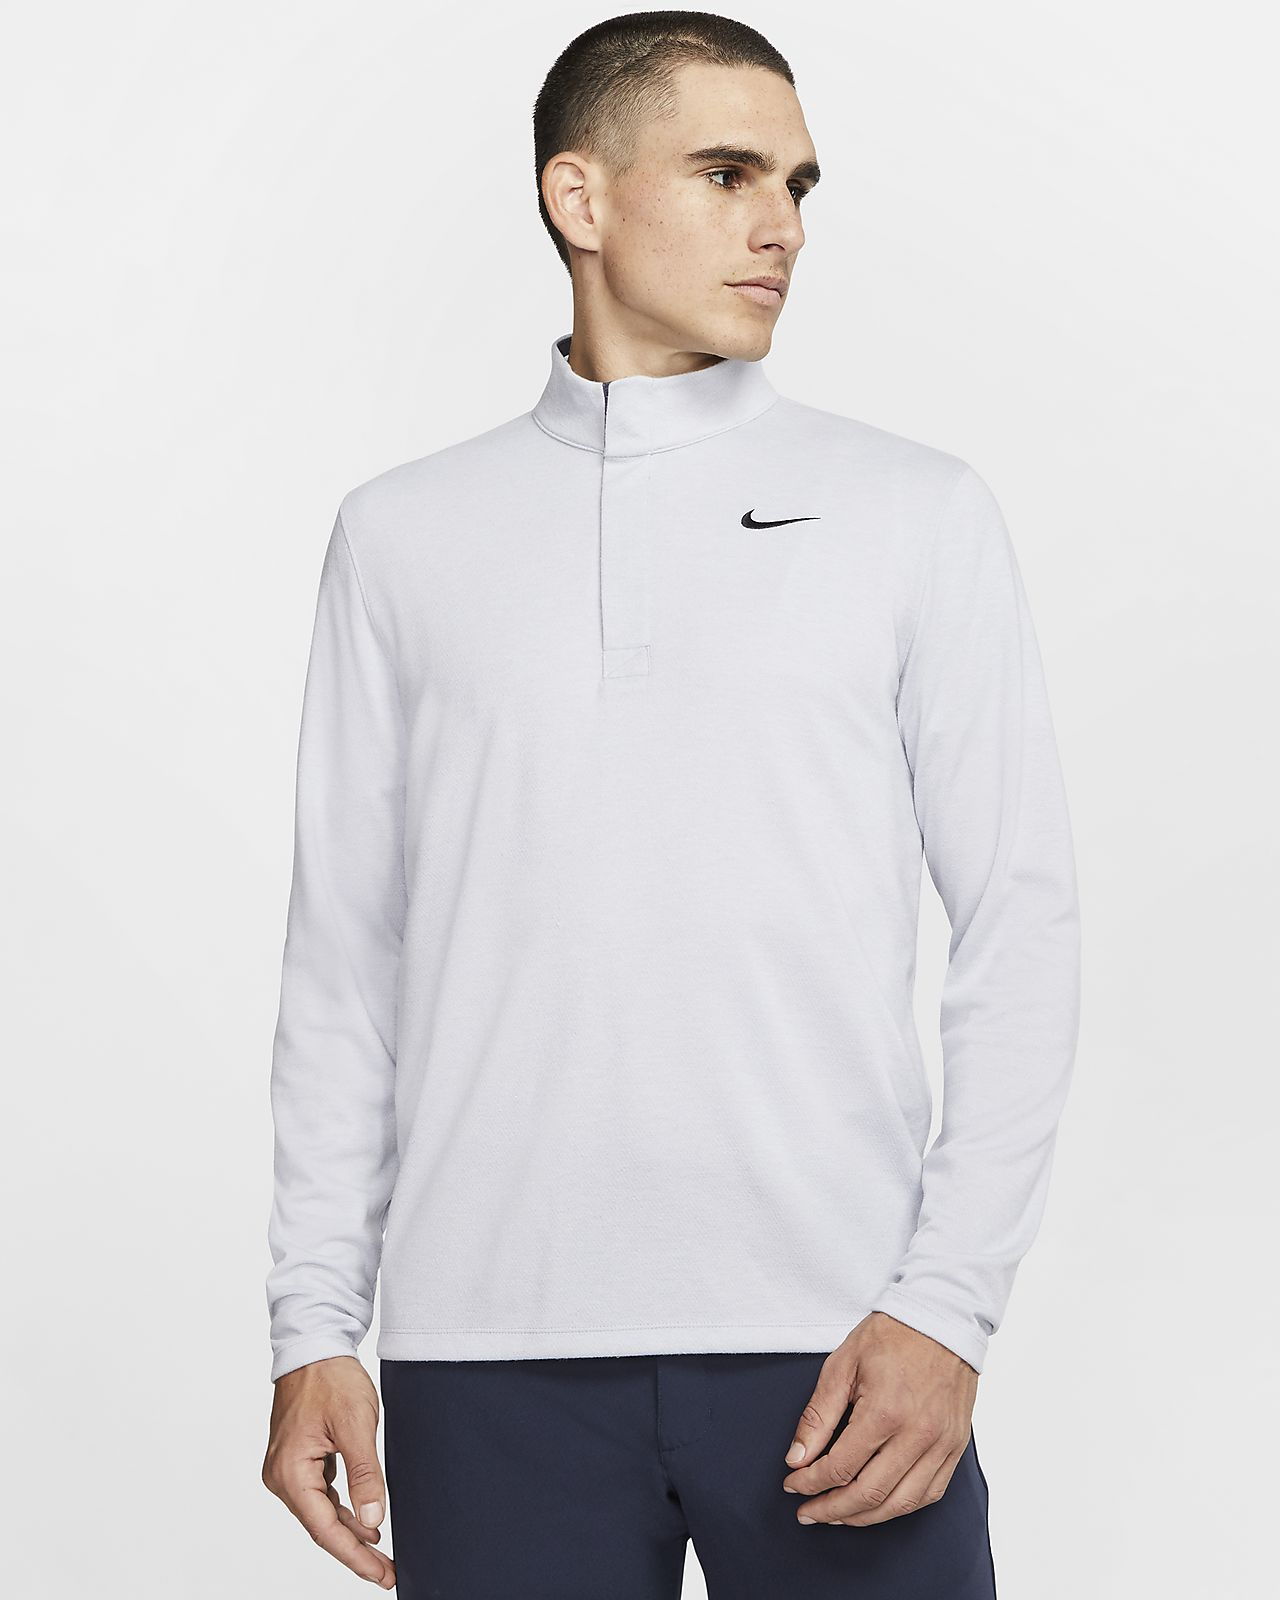 Nike Dri-FIT Victory Men's 1/2-Zip Golf Top